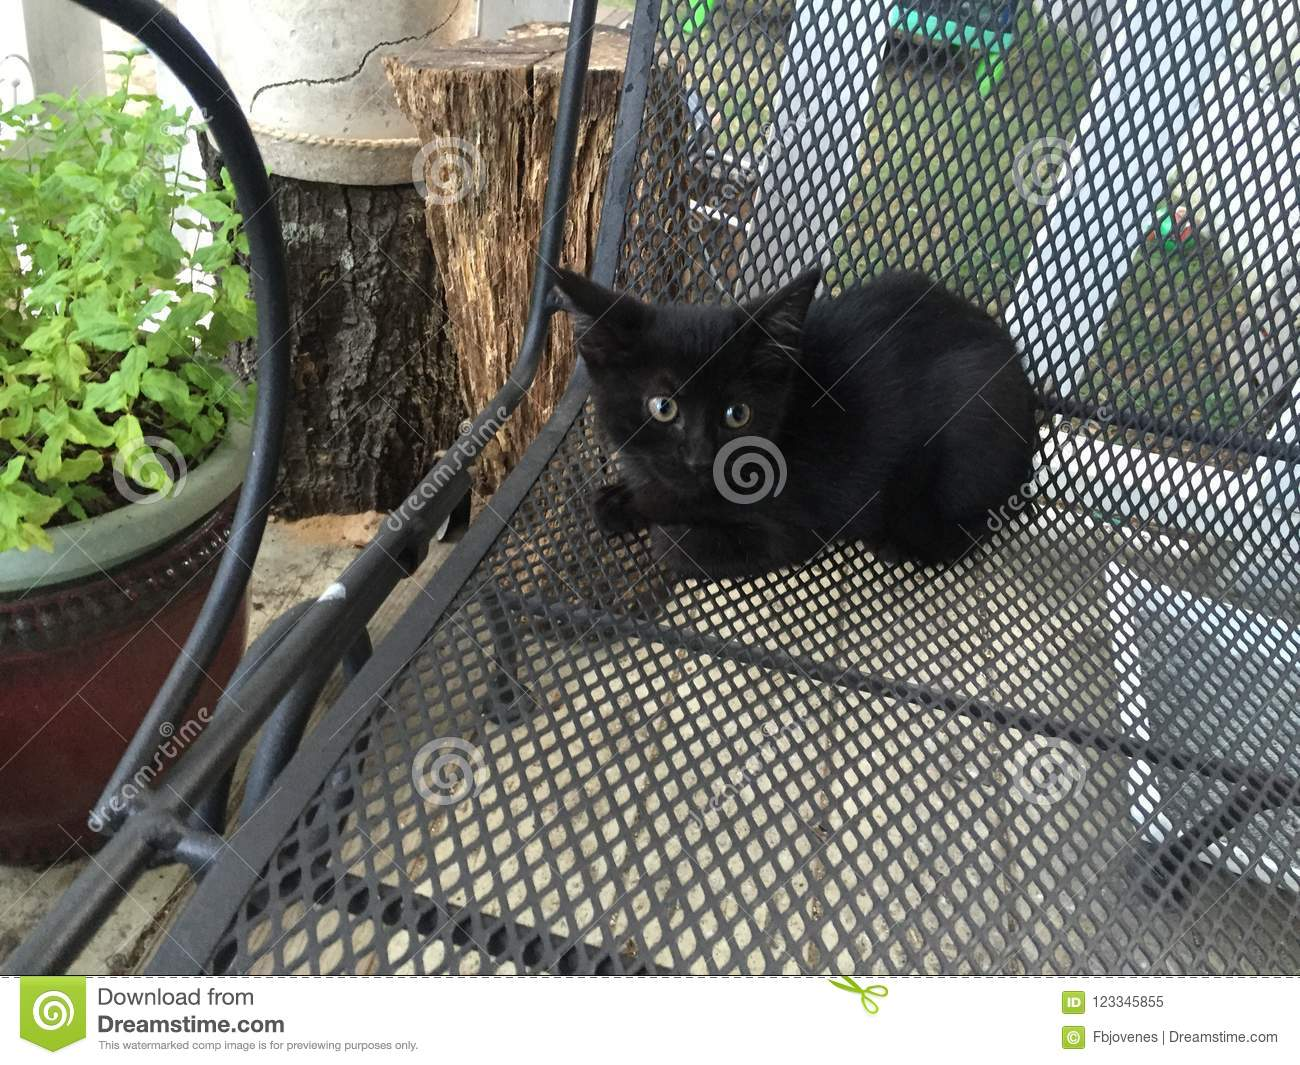 Black kitty just waiting for halloween